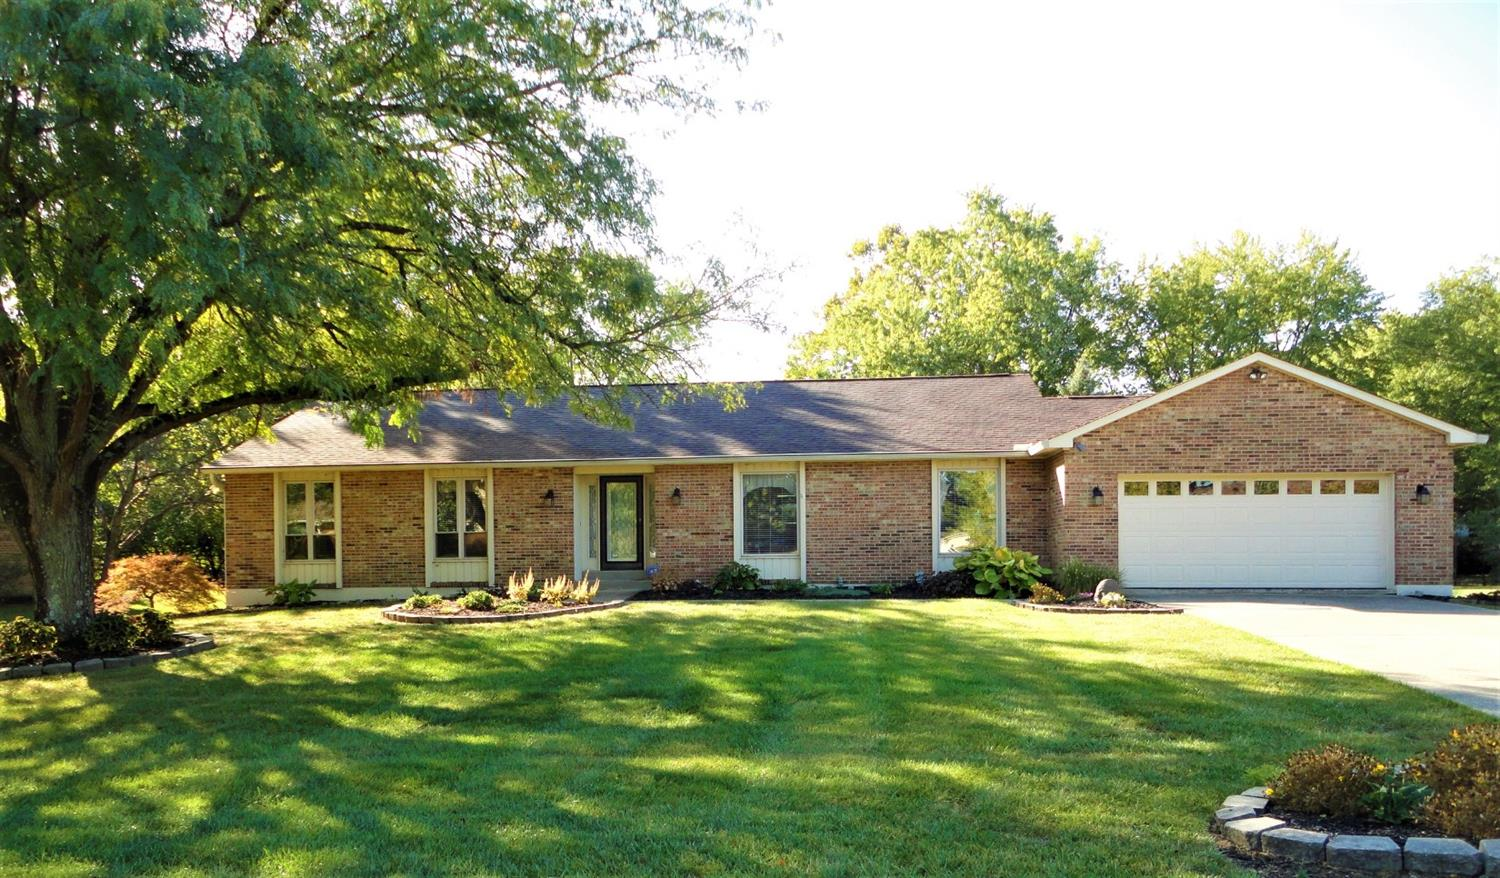 Property for sale at 6493 Butterfly Way, West Chester,  Ohio 45069